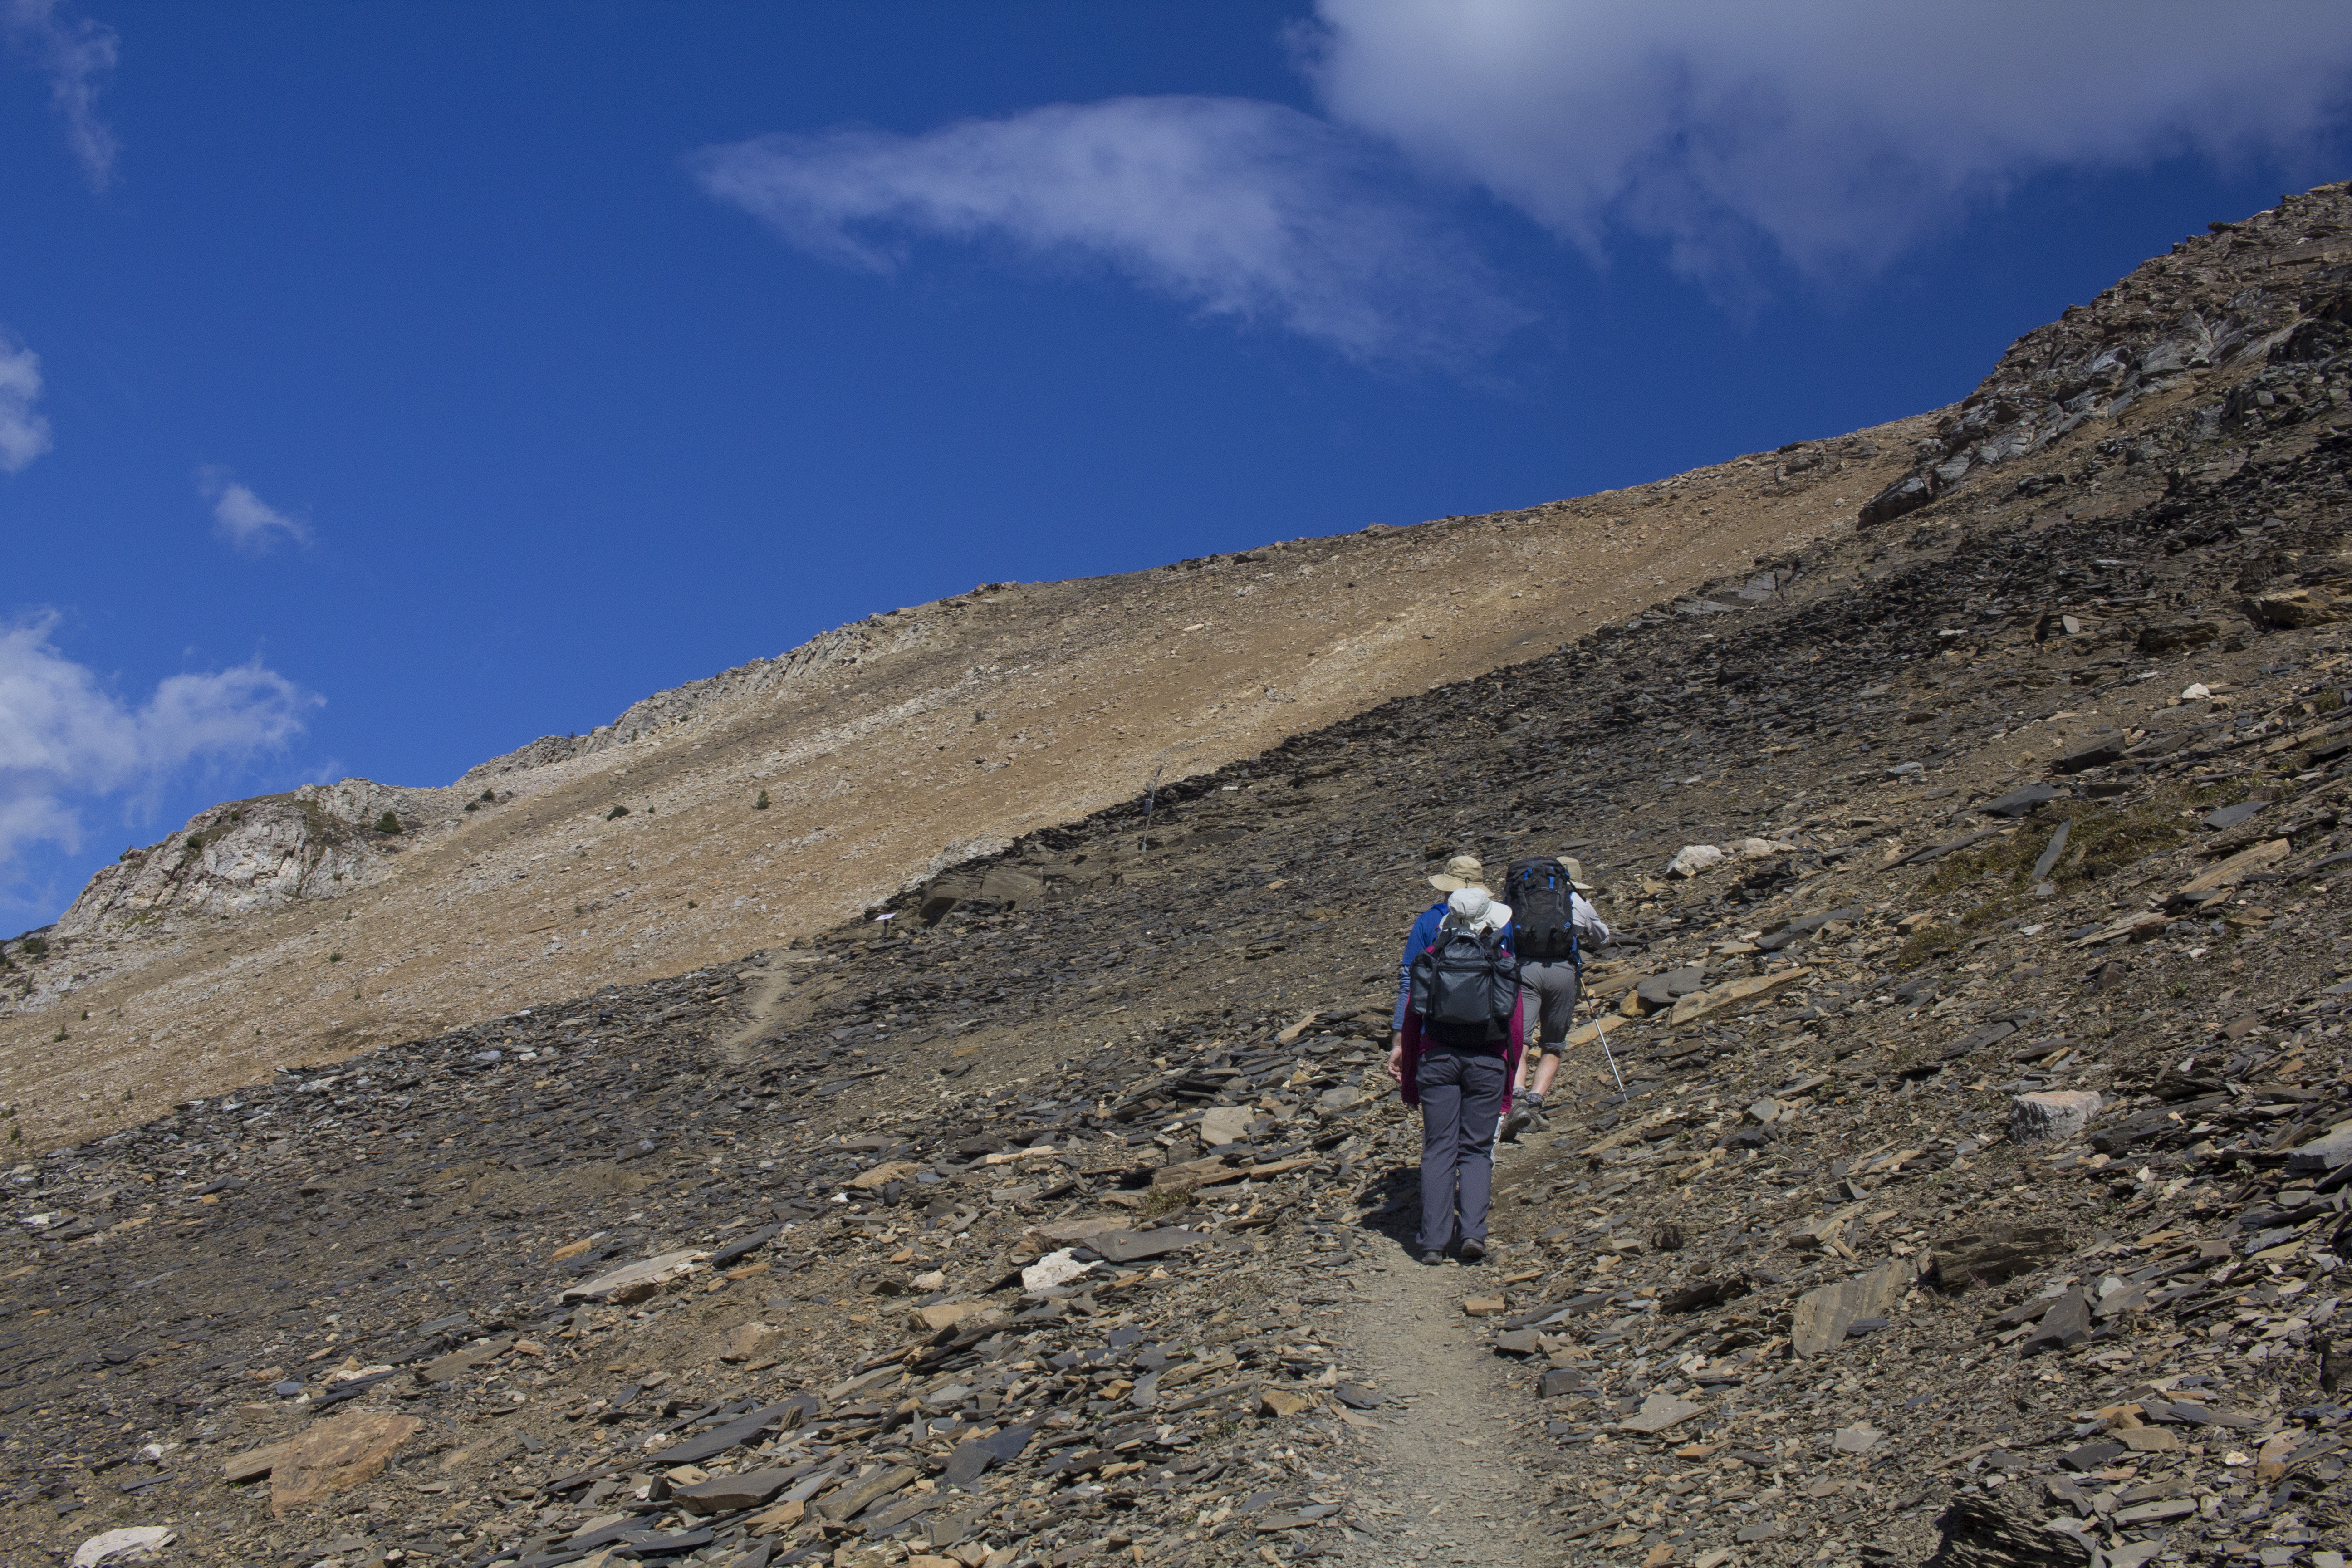 Hikers approaching the Burgess Shale